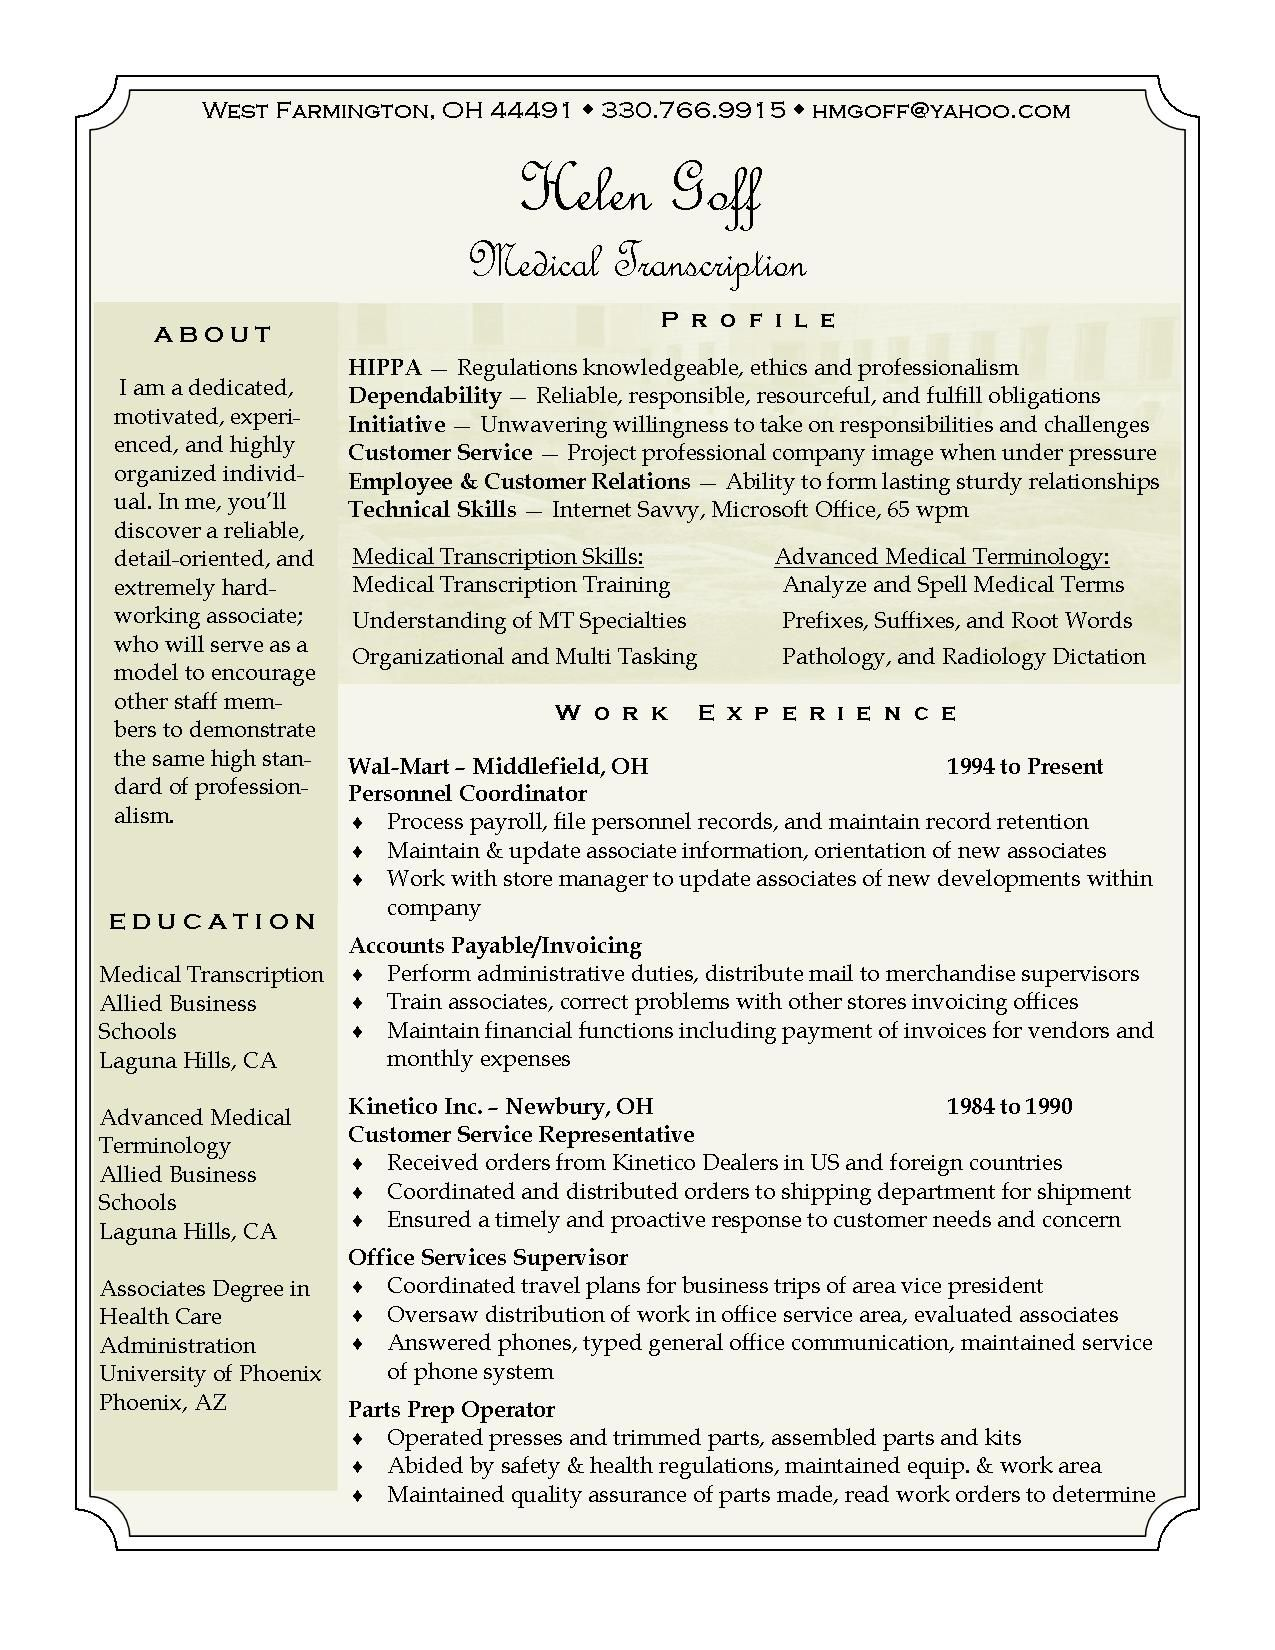 Pin By Brenda Grizzle On Medical Transcriptionist Products Information I Can Use Medical Transcription Medical Coder Resume Transcription